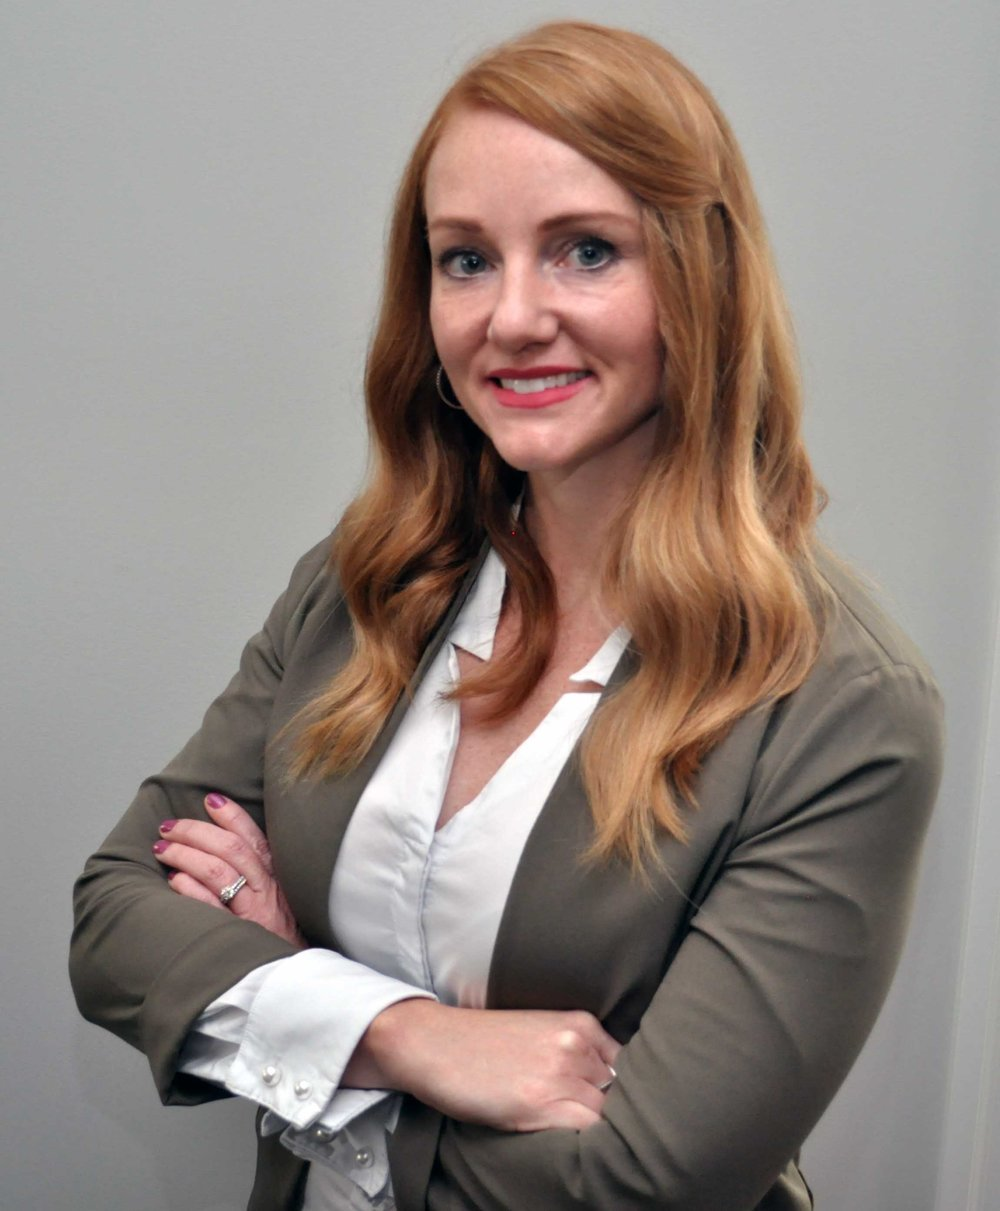 Katie's BioDetermined to use her research to create real change for women and girls, Dr. Katie Higginbottom, PhD, strategically planned her 6 year PhD journey. During her studies at the University of Toronto, Katie spent 6 months interning at Harvard Business School, researching and developing an MBA course entitled How Star Women Succeed: Leading Effective Careers and Organizations. Through this research it became very clear that women and girls face a number of obstacles that males do not face in their journeys to leadership, and that current leadership education and training falls short of providing specific, research-based strategies for female leaders. It also became clear that, when in positions of leadership, females, more so than males, advocate for the disadvantaged.In light of this, Katie launched Empower Academy, determined to help more women and girls reach top levels of leadership. Under the umbrella of Empower Academy are two education programs: WIL Power, for women, and Empowered Girls, for tweens and teens. WIL Power offers educational opportunities specifically developed for women leaders, bringing together experts in their fields to tap into women's unique potential and to holistically harness women's leadership skills. Empowered Girls, utilizes Katie's 10 years of experience as a high school teacher, to create unique learning opportunities for girls in preparation for the bright futures that await them. Katie further shares her knowledge speaking to various audiences about women and girls, as well as, working as a professor teaching and mentoring leaders in Western University's Master of Education program.Katie has presented her research at national and international conferences, and has published her writing in national and international books and journals. Katie serves as a board member for the United Way and is an avid volunteer on initiatives that inspire her. Nominated for her philanthropic work, Katie was a finalist in Chatelaine Magazine's 